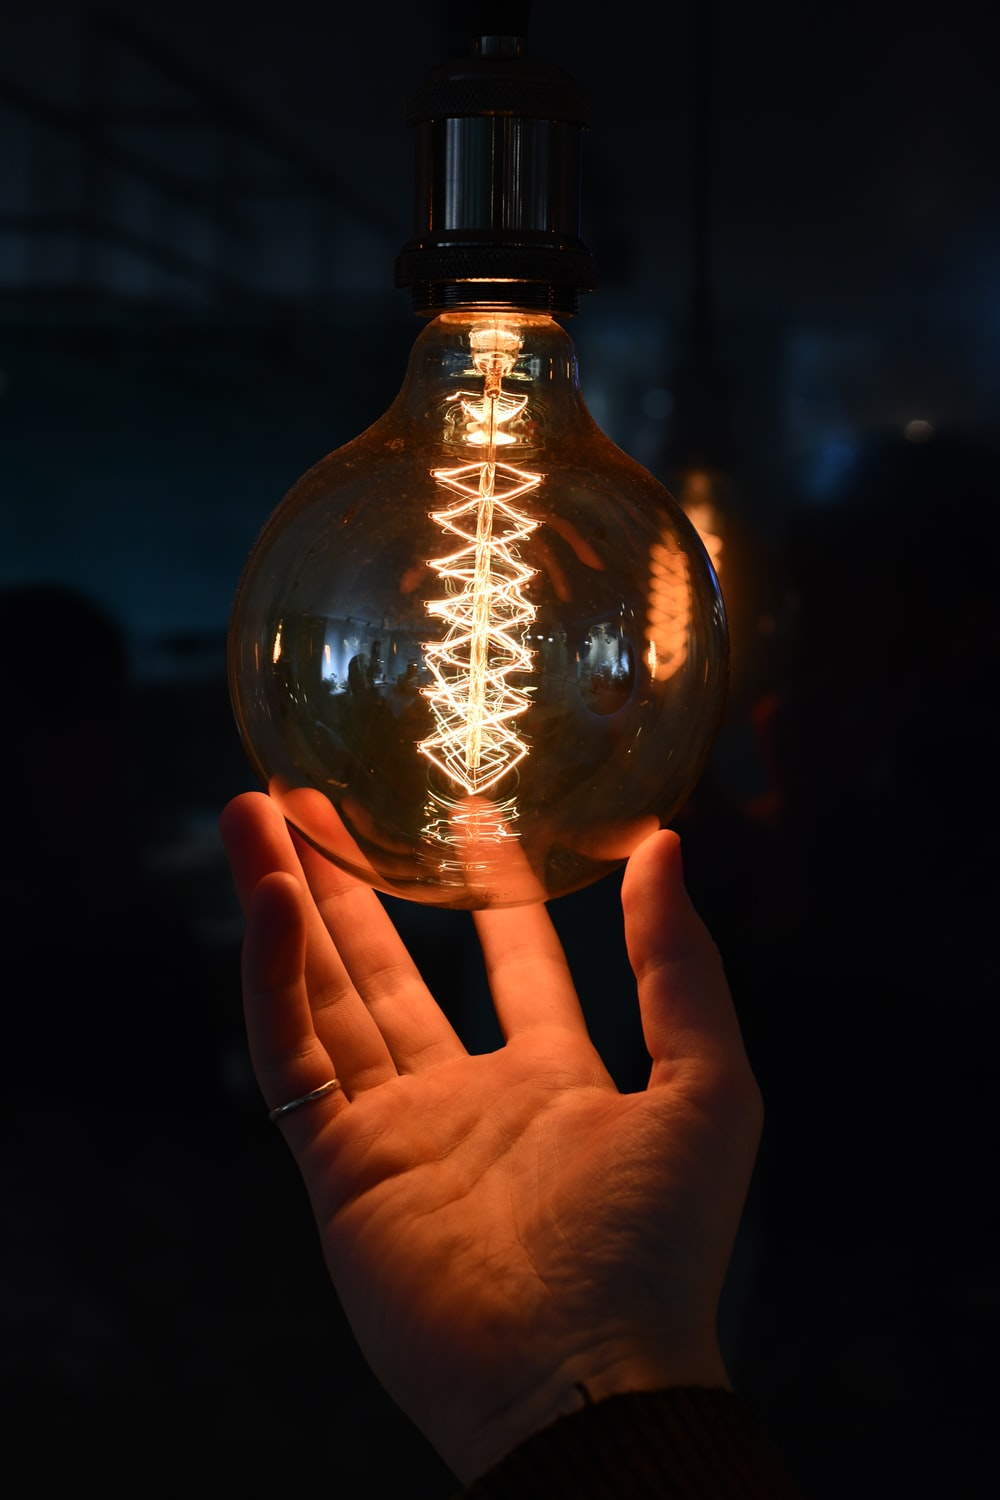 person holding clear glass bulb